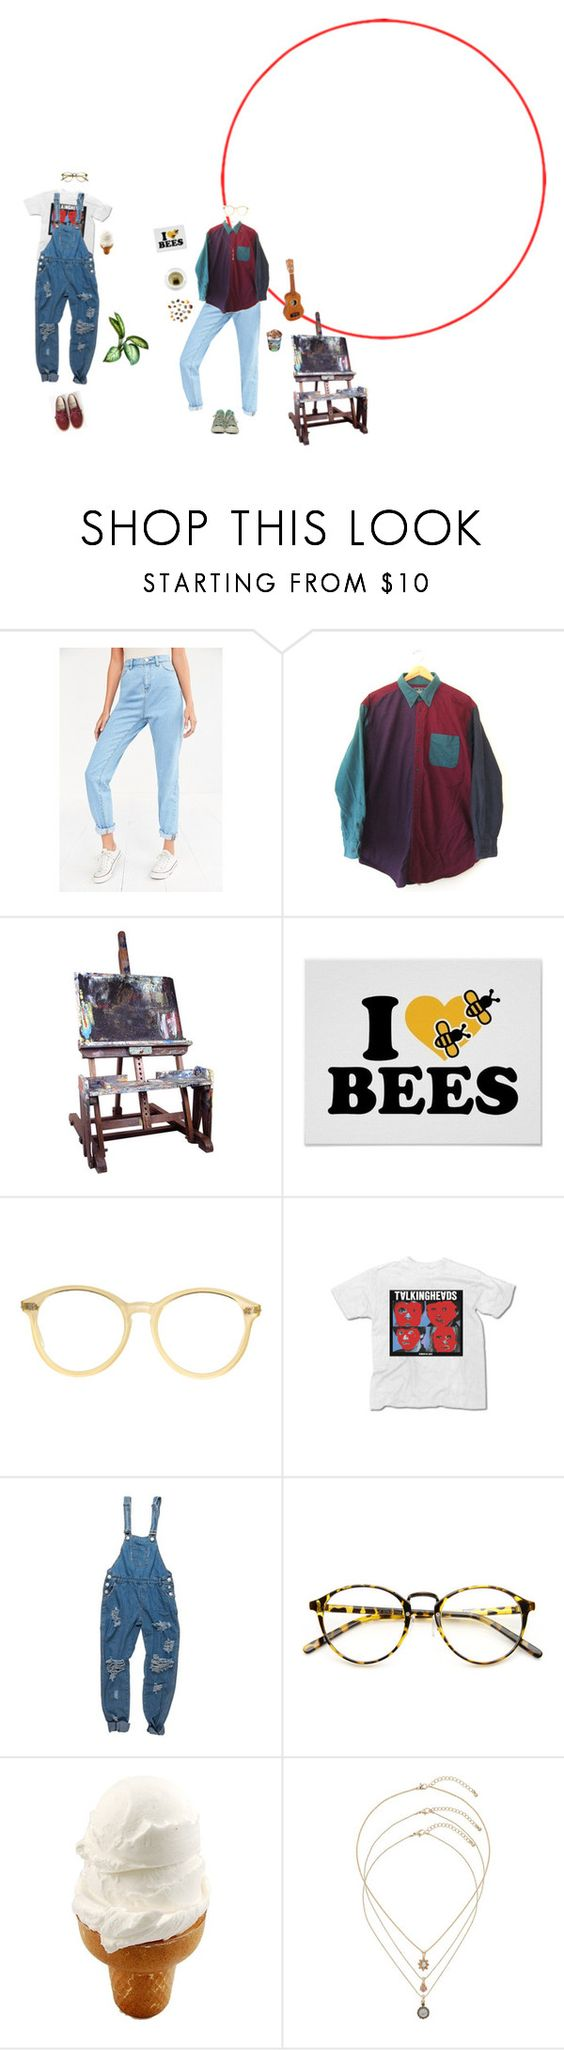 """""""Half baked"""" by tipsie ❤ liked on Polyvore featuring BDG, Woolrich, Converse, EASEL, American Apparel, INDIE HAIR and Topshop"""